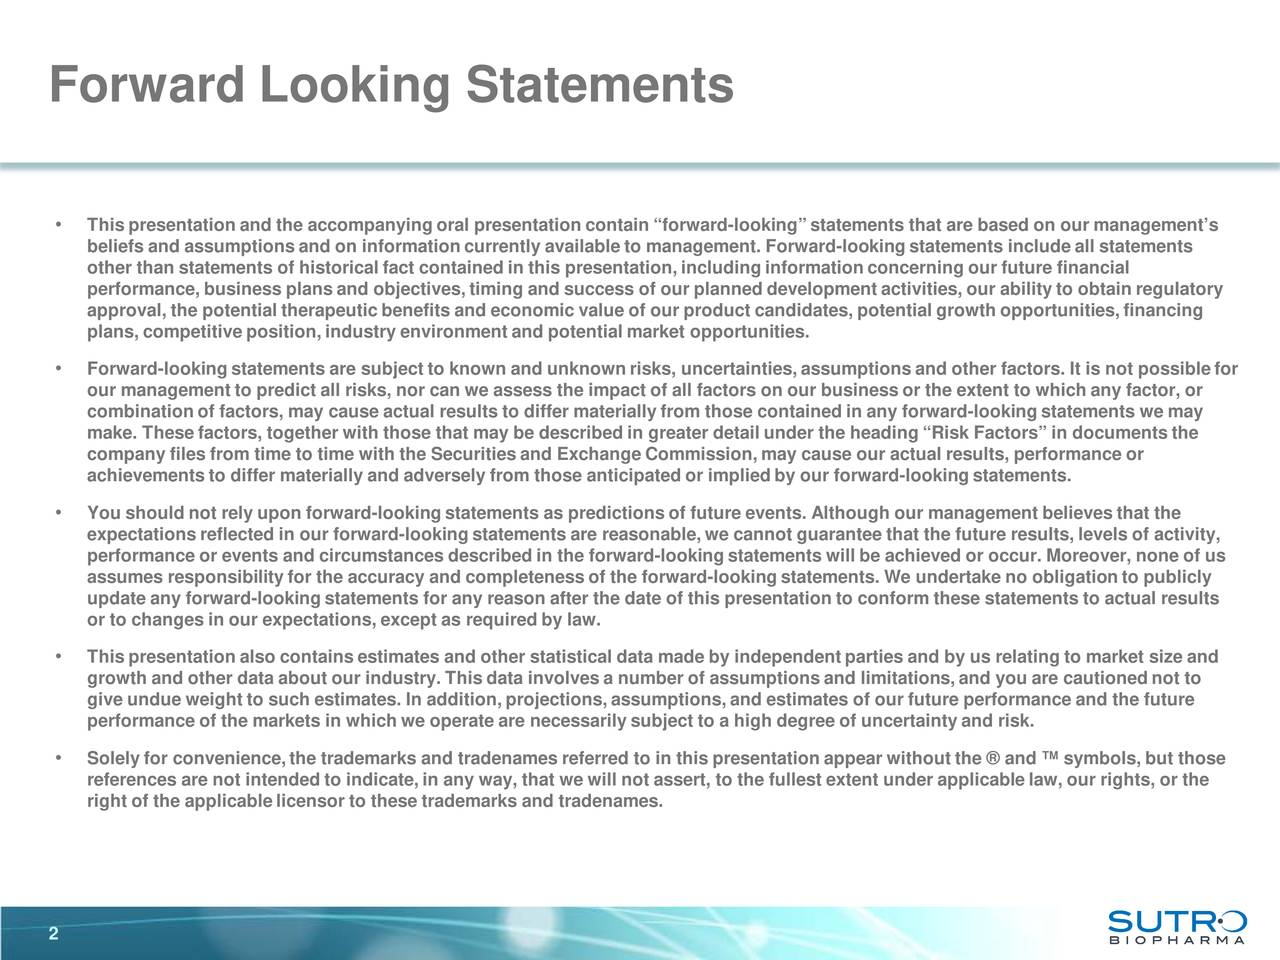 """• This presentation and the accompanying oral presentation contain """"forward-looking"""" statements that are based on our management's beliefs and assumptions and on information currently available to management. Forward-looking statements include all statements other than statements of historical fact contained in this presentation, including information concerning our future financia l performance, business plans and objectives, timing and success of our planned development activities, our ability to obtain regulatory approval, the potential therapeutic benefits and economic value of our product candidates, potential growth opportunities, financing plans, competitive position, industry environment and potential market opportunities. • Forward-looking statements are subject to known and unknown risks, uncertainties, assumptions and other factors. It is not possible for our management to predict all risks, nor can we assess the impact of all factors on our business or the extent to which any aftor, or combination of factors, may cause actual results to differ materially from those contained in any forwar-looking statements wemay make. These factors, together with those that may be described in greater detail under the heading """"Risk Factors"""" in documes ntthe company files from time to time with the Securities and Exchange Commission, may cause our actual results, performance or achievements to differ materially and adversely from those anticipated or implied by our forwar-dlooking statements. • You should not rely upon forward-looking statements as predictions of future events. Although our management believes that the expectations reflected in our forward-looking statements are reasonable, we cannot guarantee that the future results, levels oafctivity, performance or events and circumstances described in the forward -looking statements will be achieved or occur. Moreover, none of us assumes responsibility for the accuracy and completeness of the forward -looking stateme"""